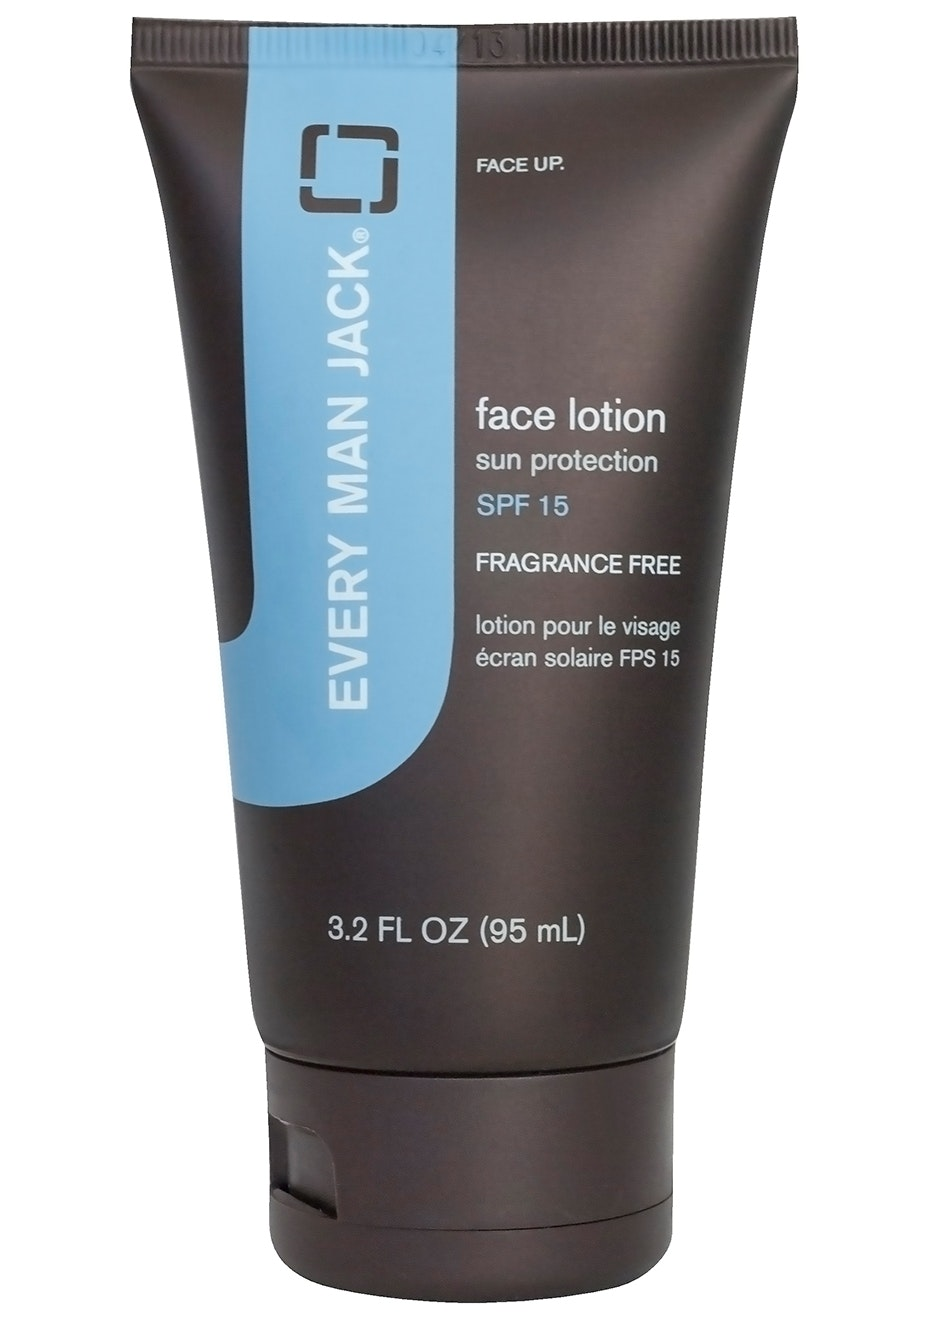 Every Man Jack - Face Lotion SPF 15